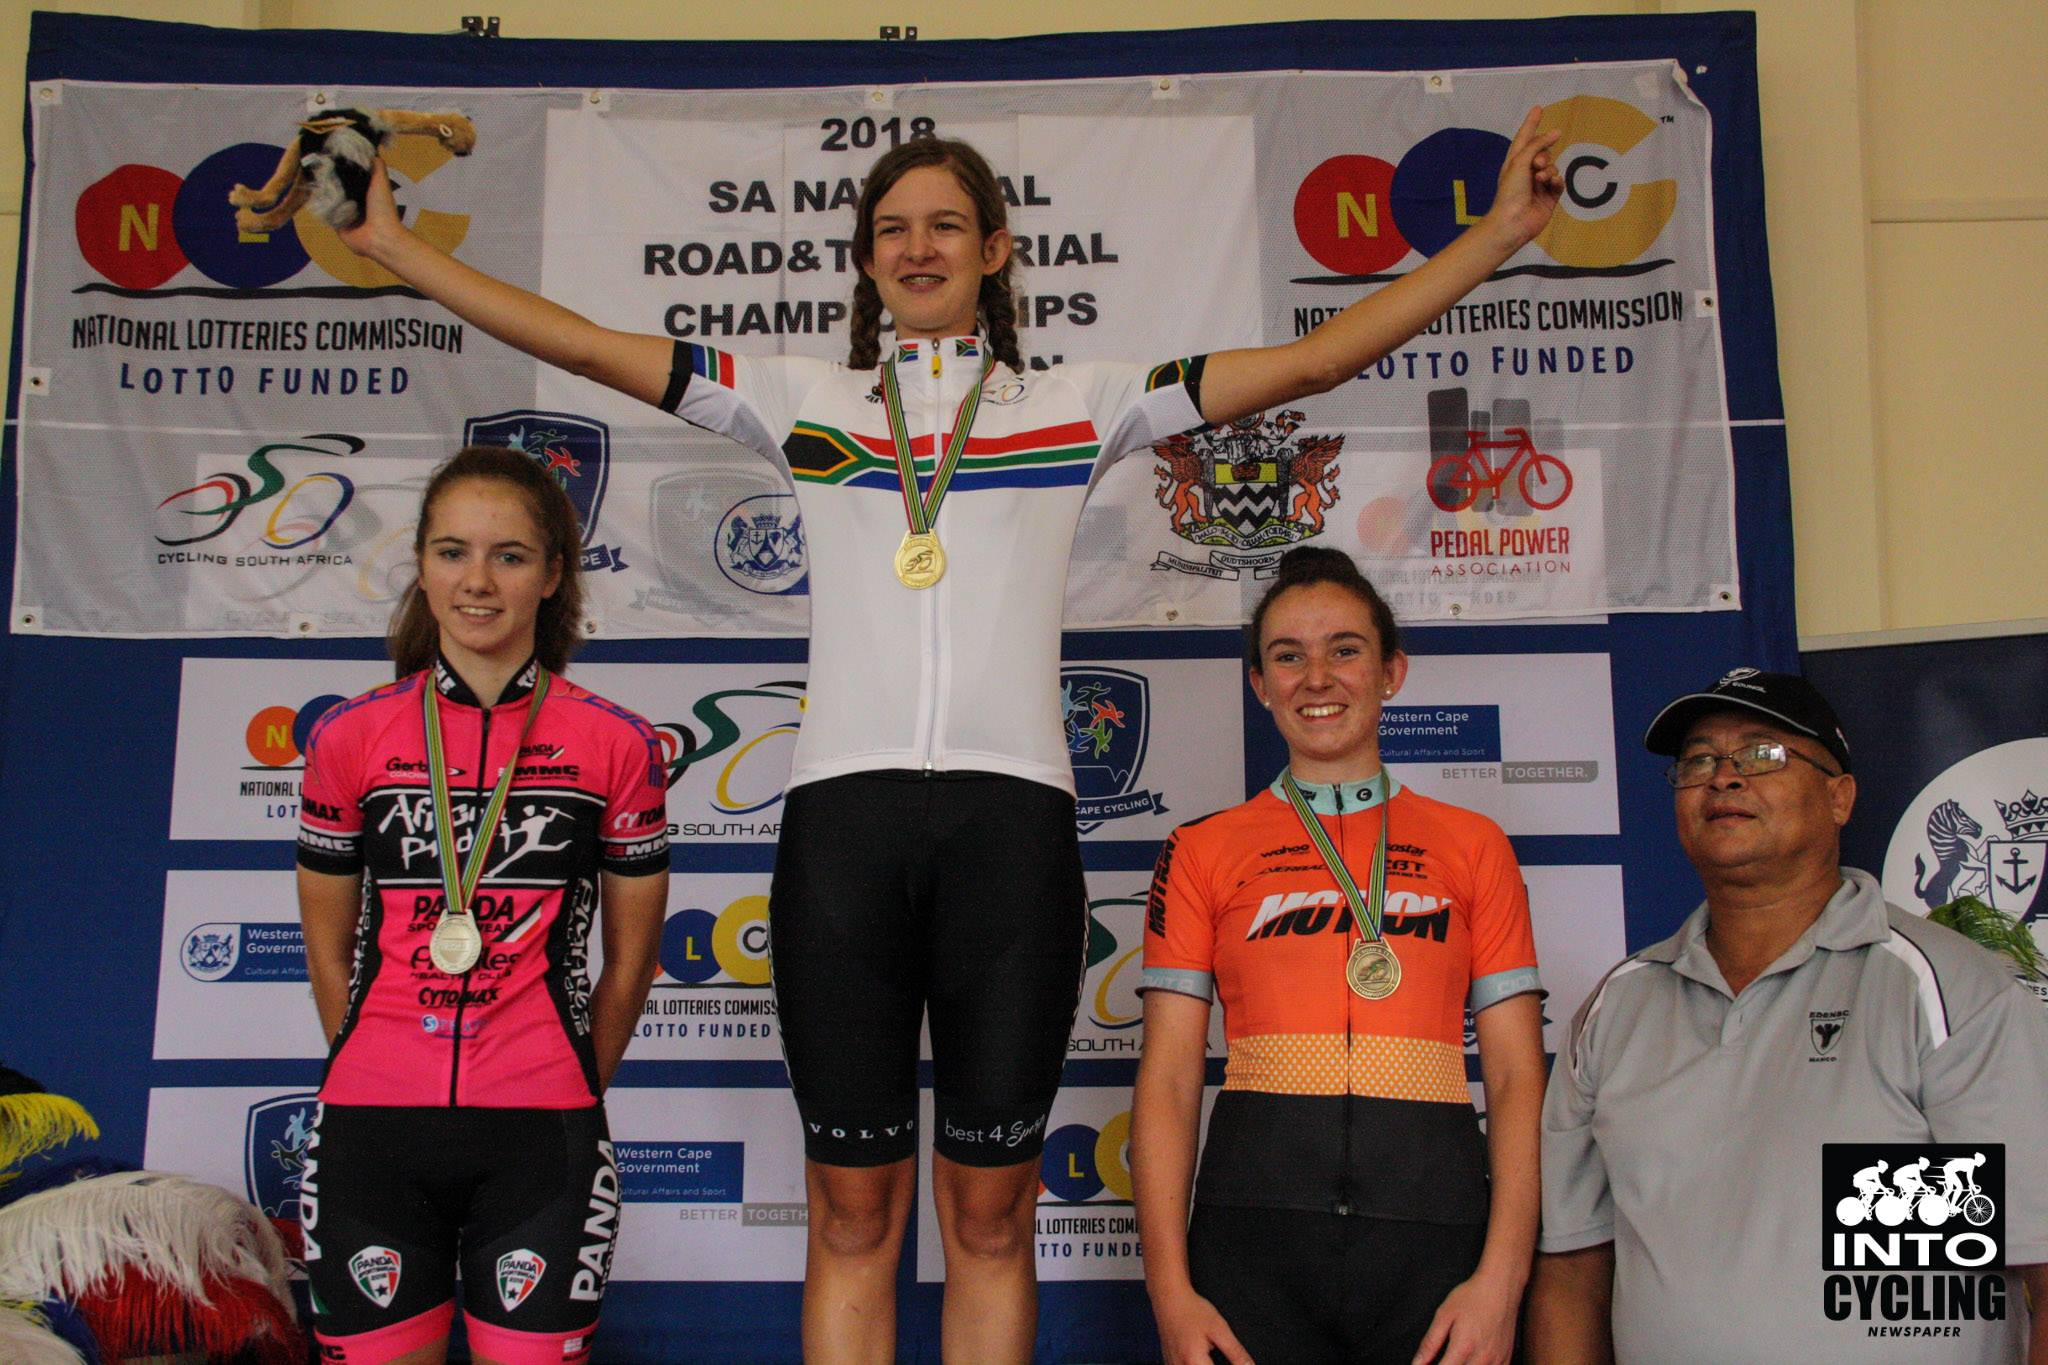 Junior Women's winner Tiffany Keep (Team Silverback Volvo) flanked by Kelsey van Schoor (Team African Pride-left) and Carla Steyn (Absolute Motion-right) at the 2018 SA National Road and Para-cycling Championships, which took place in the streets of Oudtshoorn from 6-11 February. 📷 www.intocycling.co.za